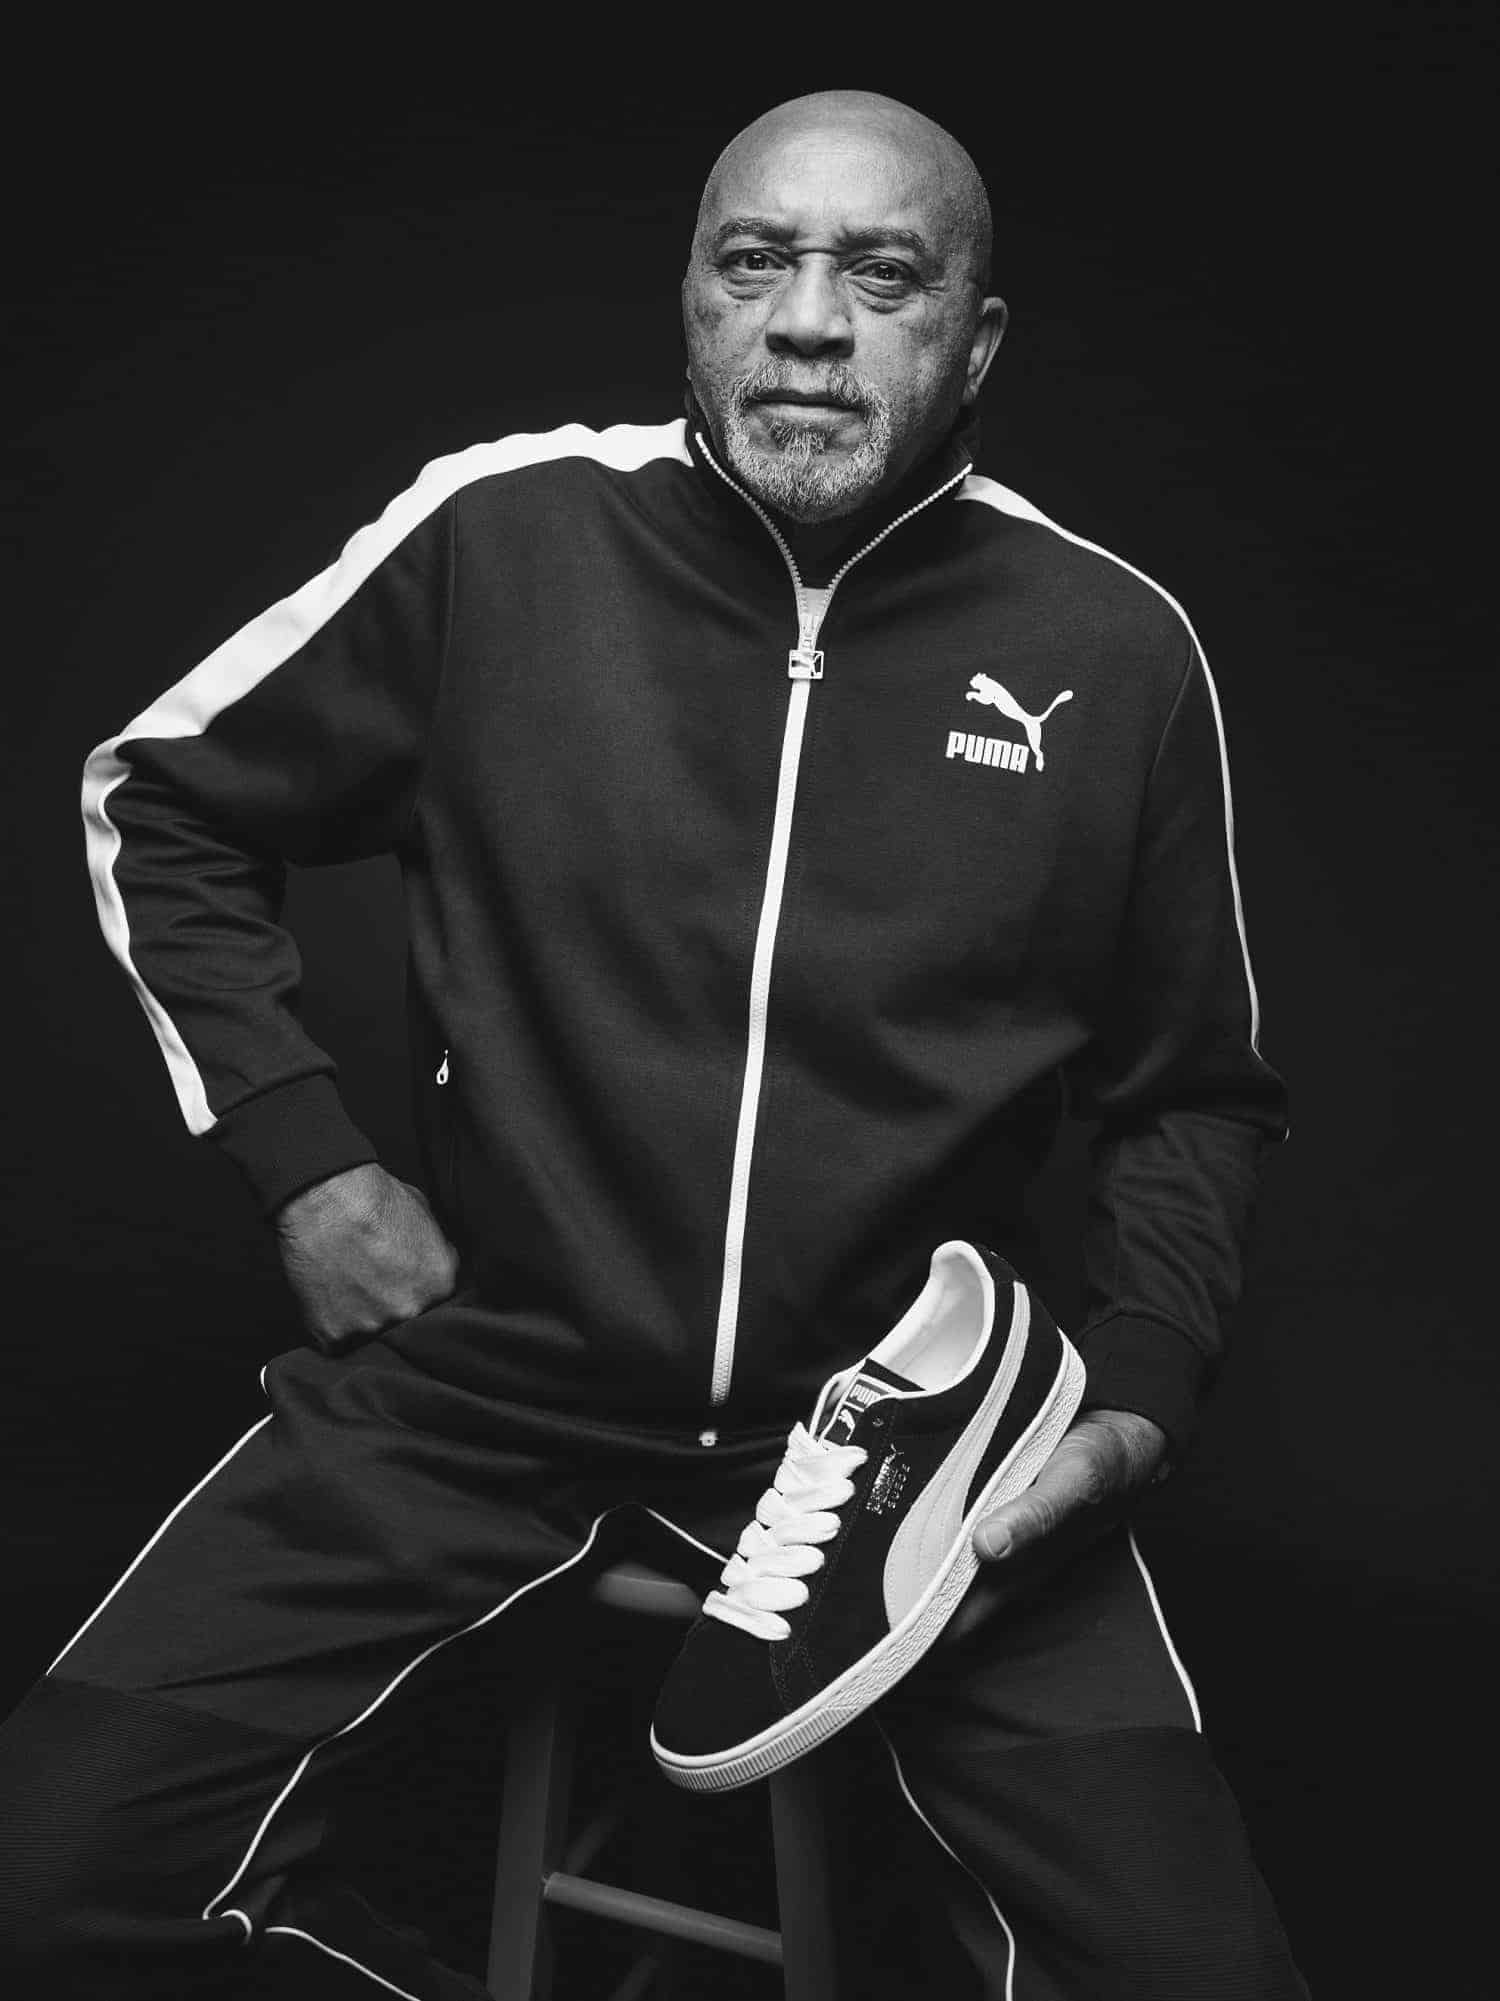 PUMA Suede - Tommie Smith